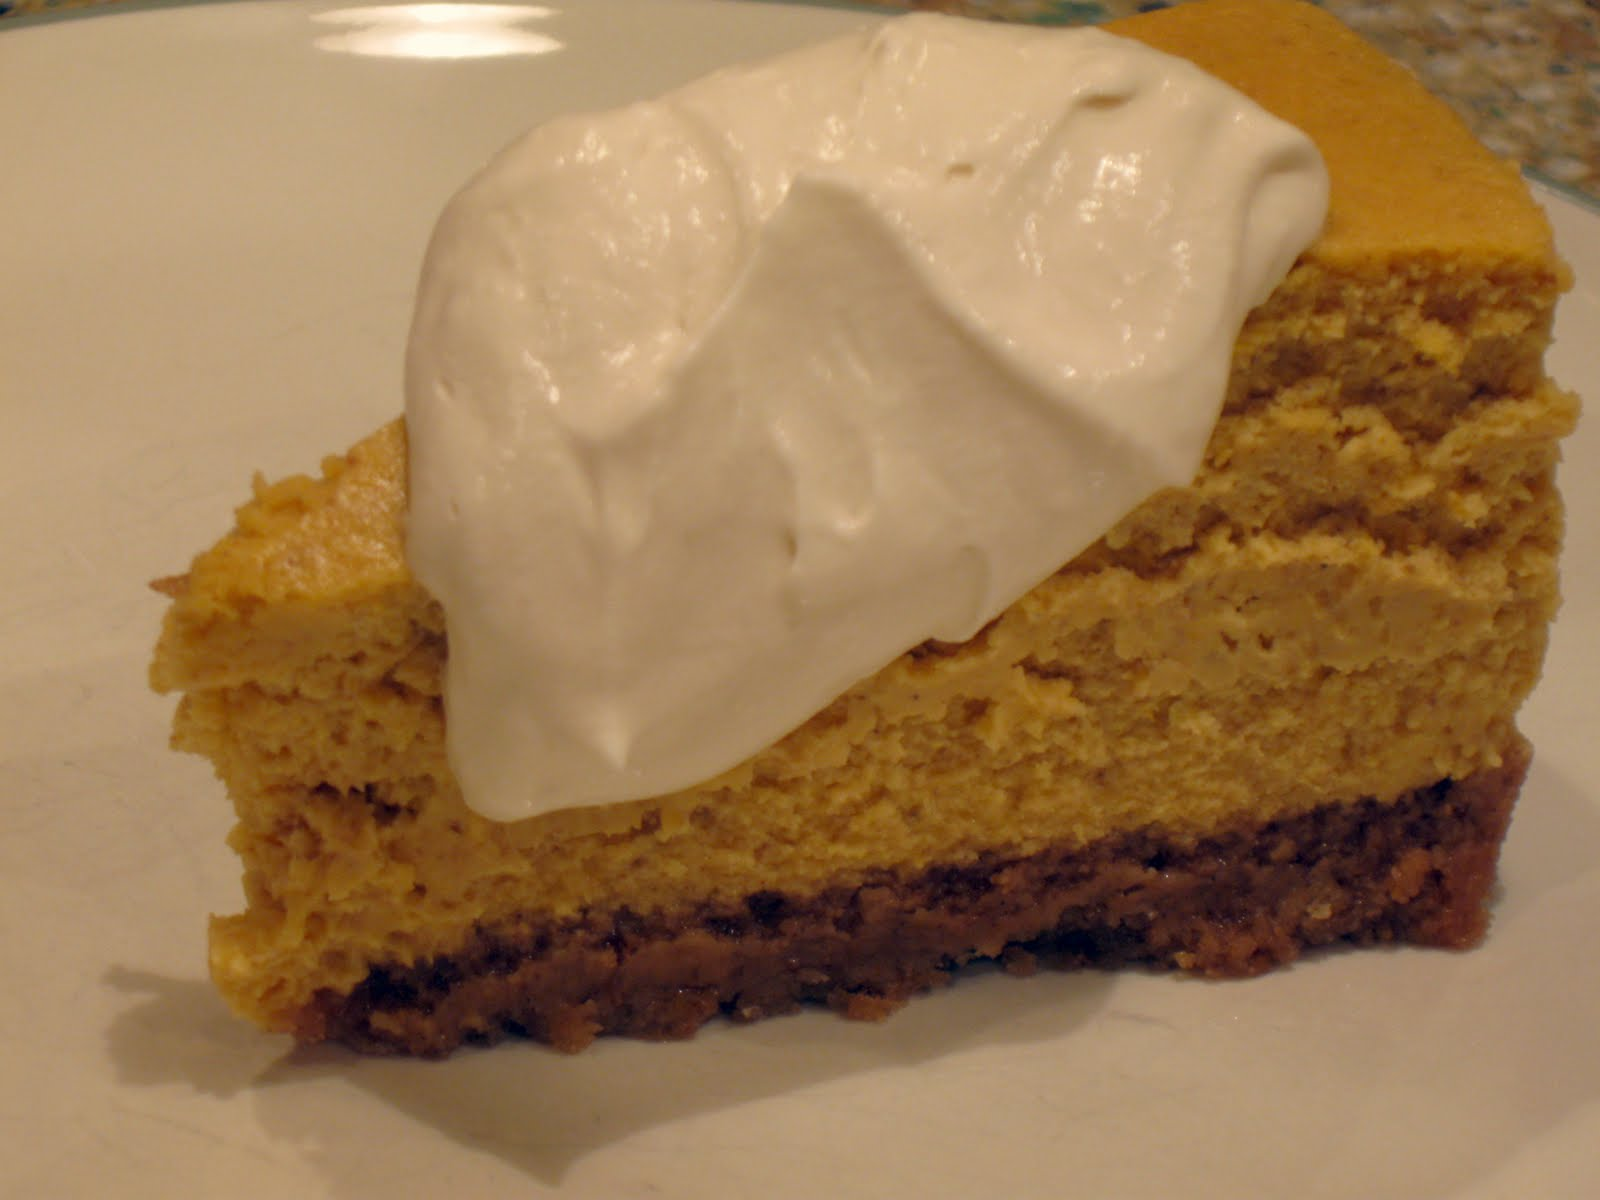 pumpkin cheesecake recipe Complete list of Pumpkin Cheesecake Recipes ...